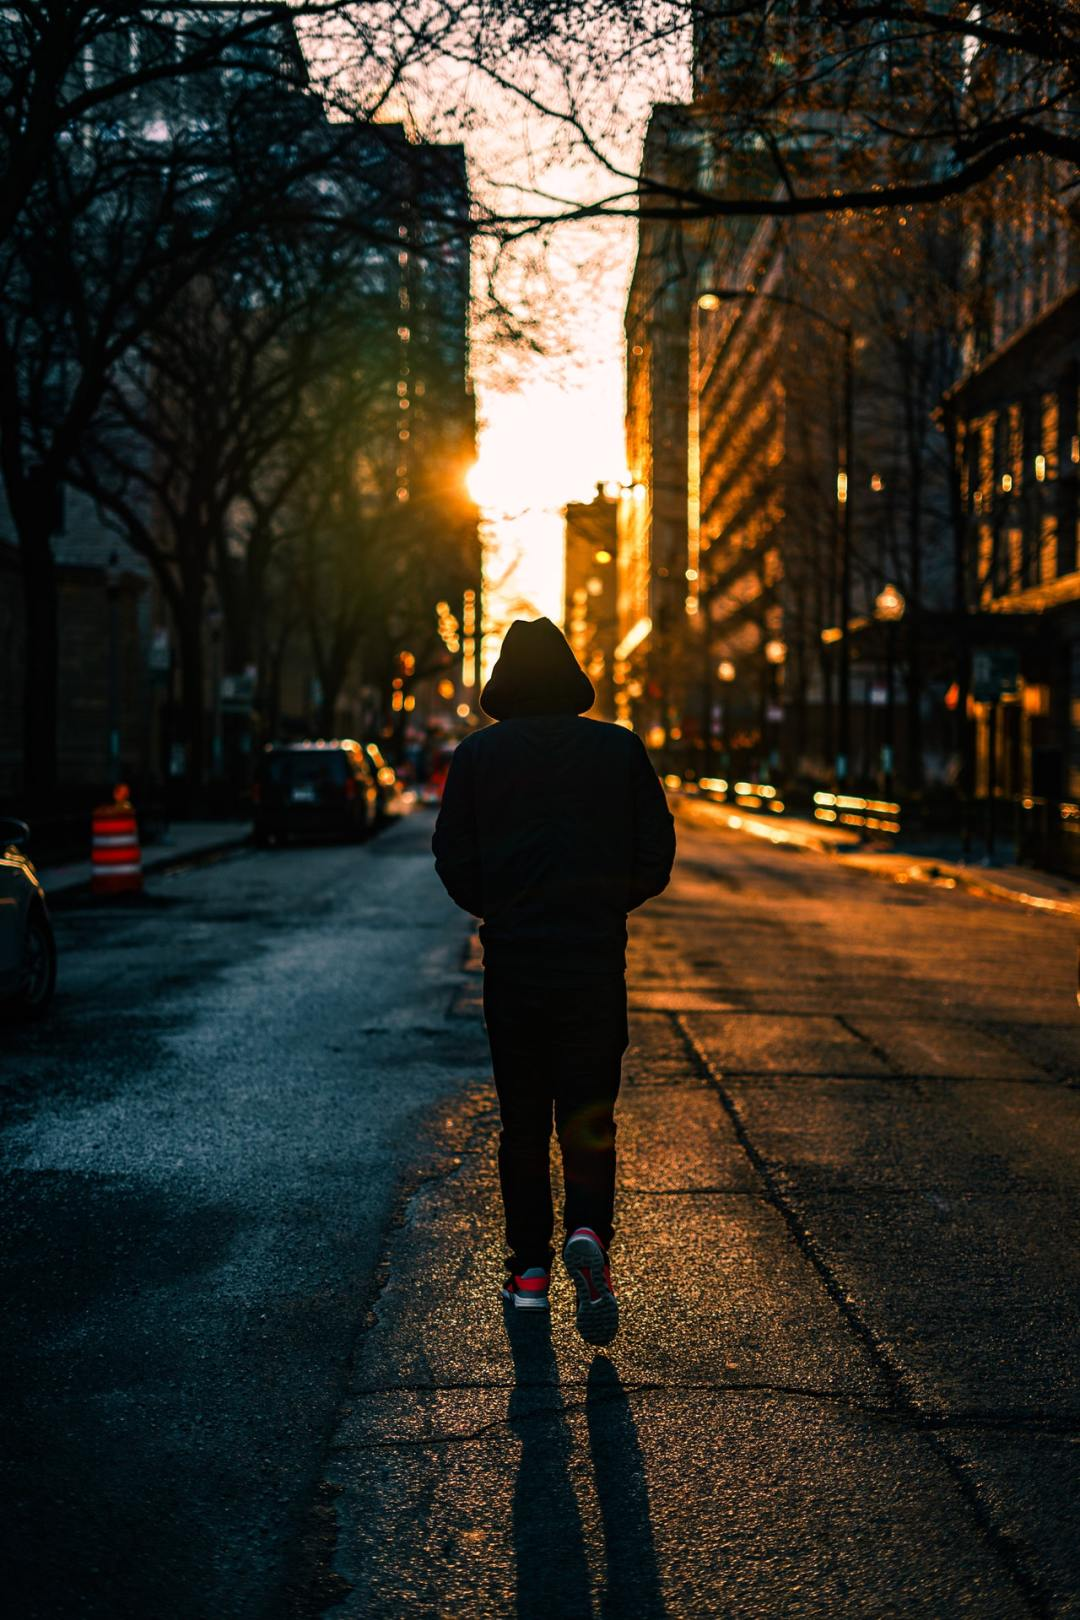 person walking on the road